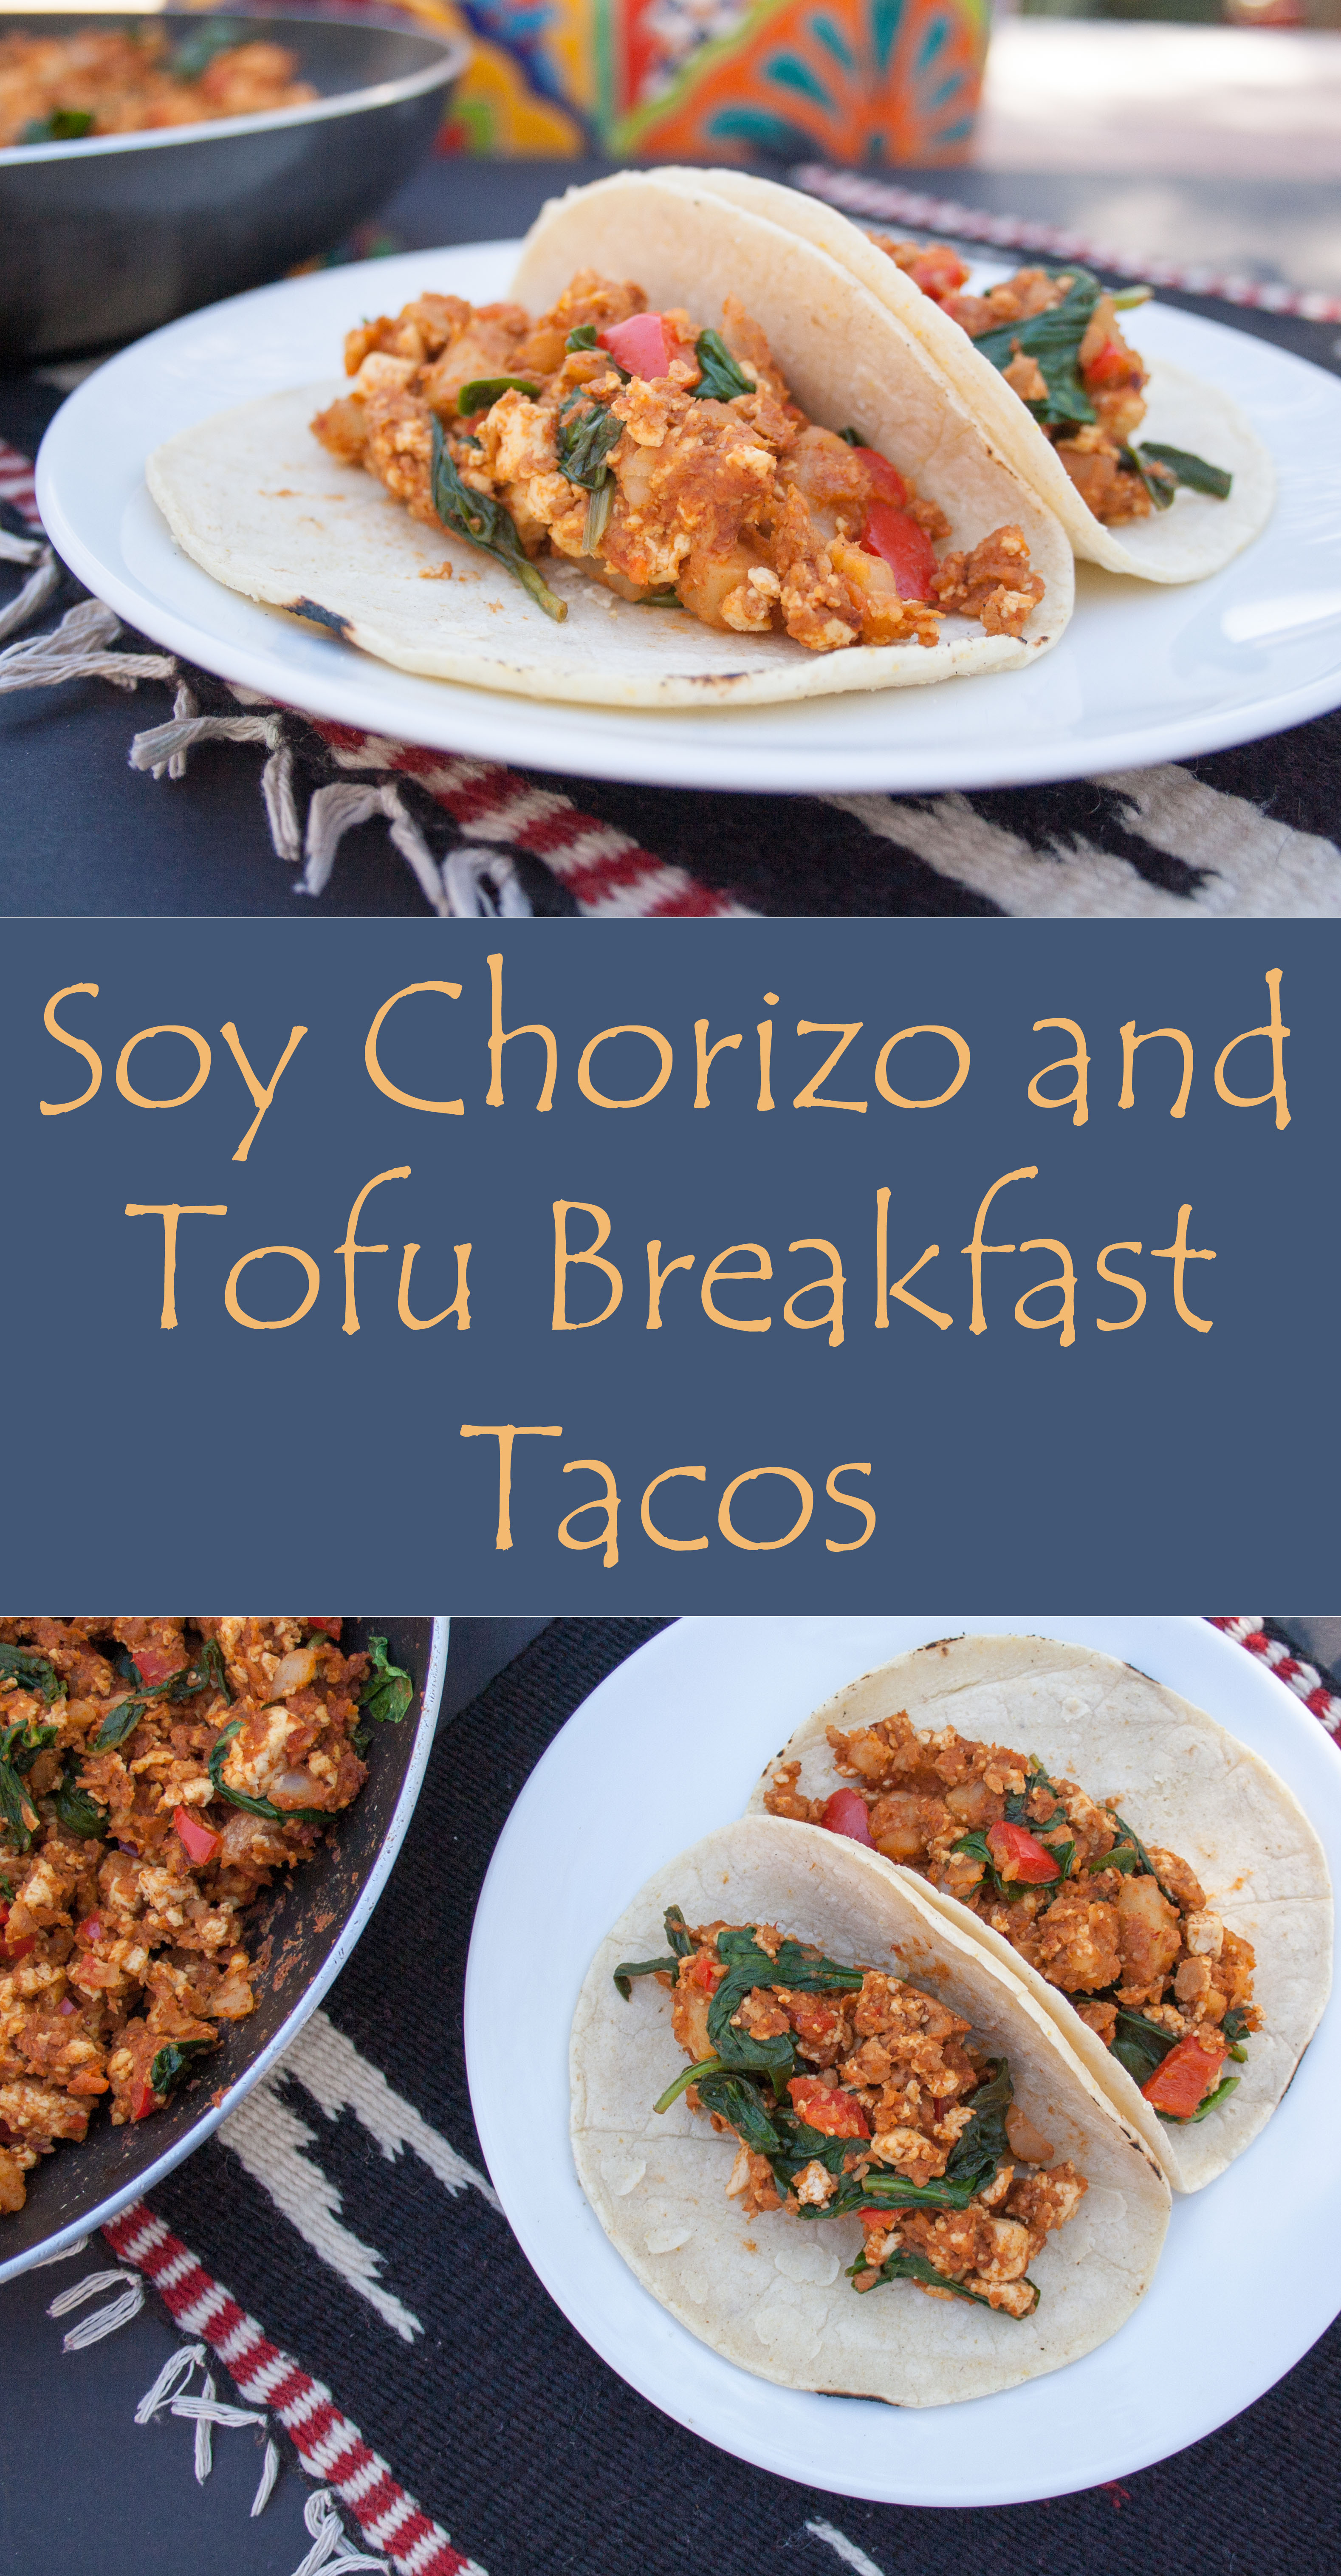 Soy Chorizo Tacos collage photo with text.